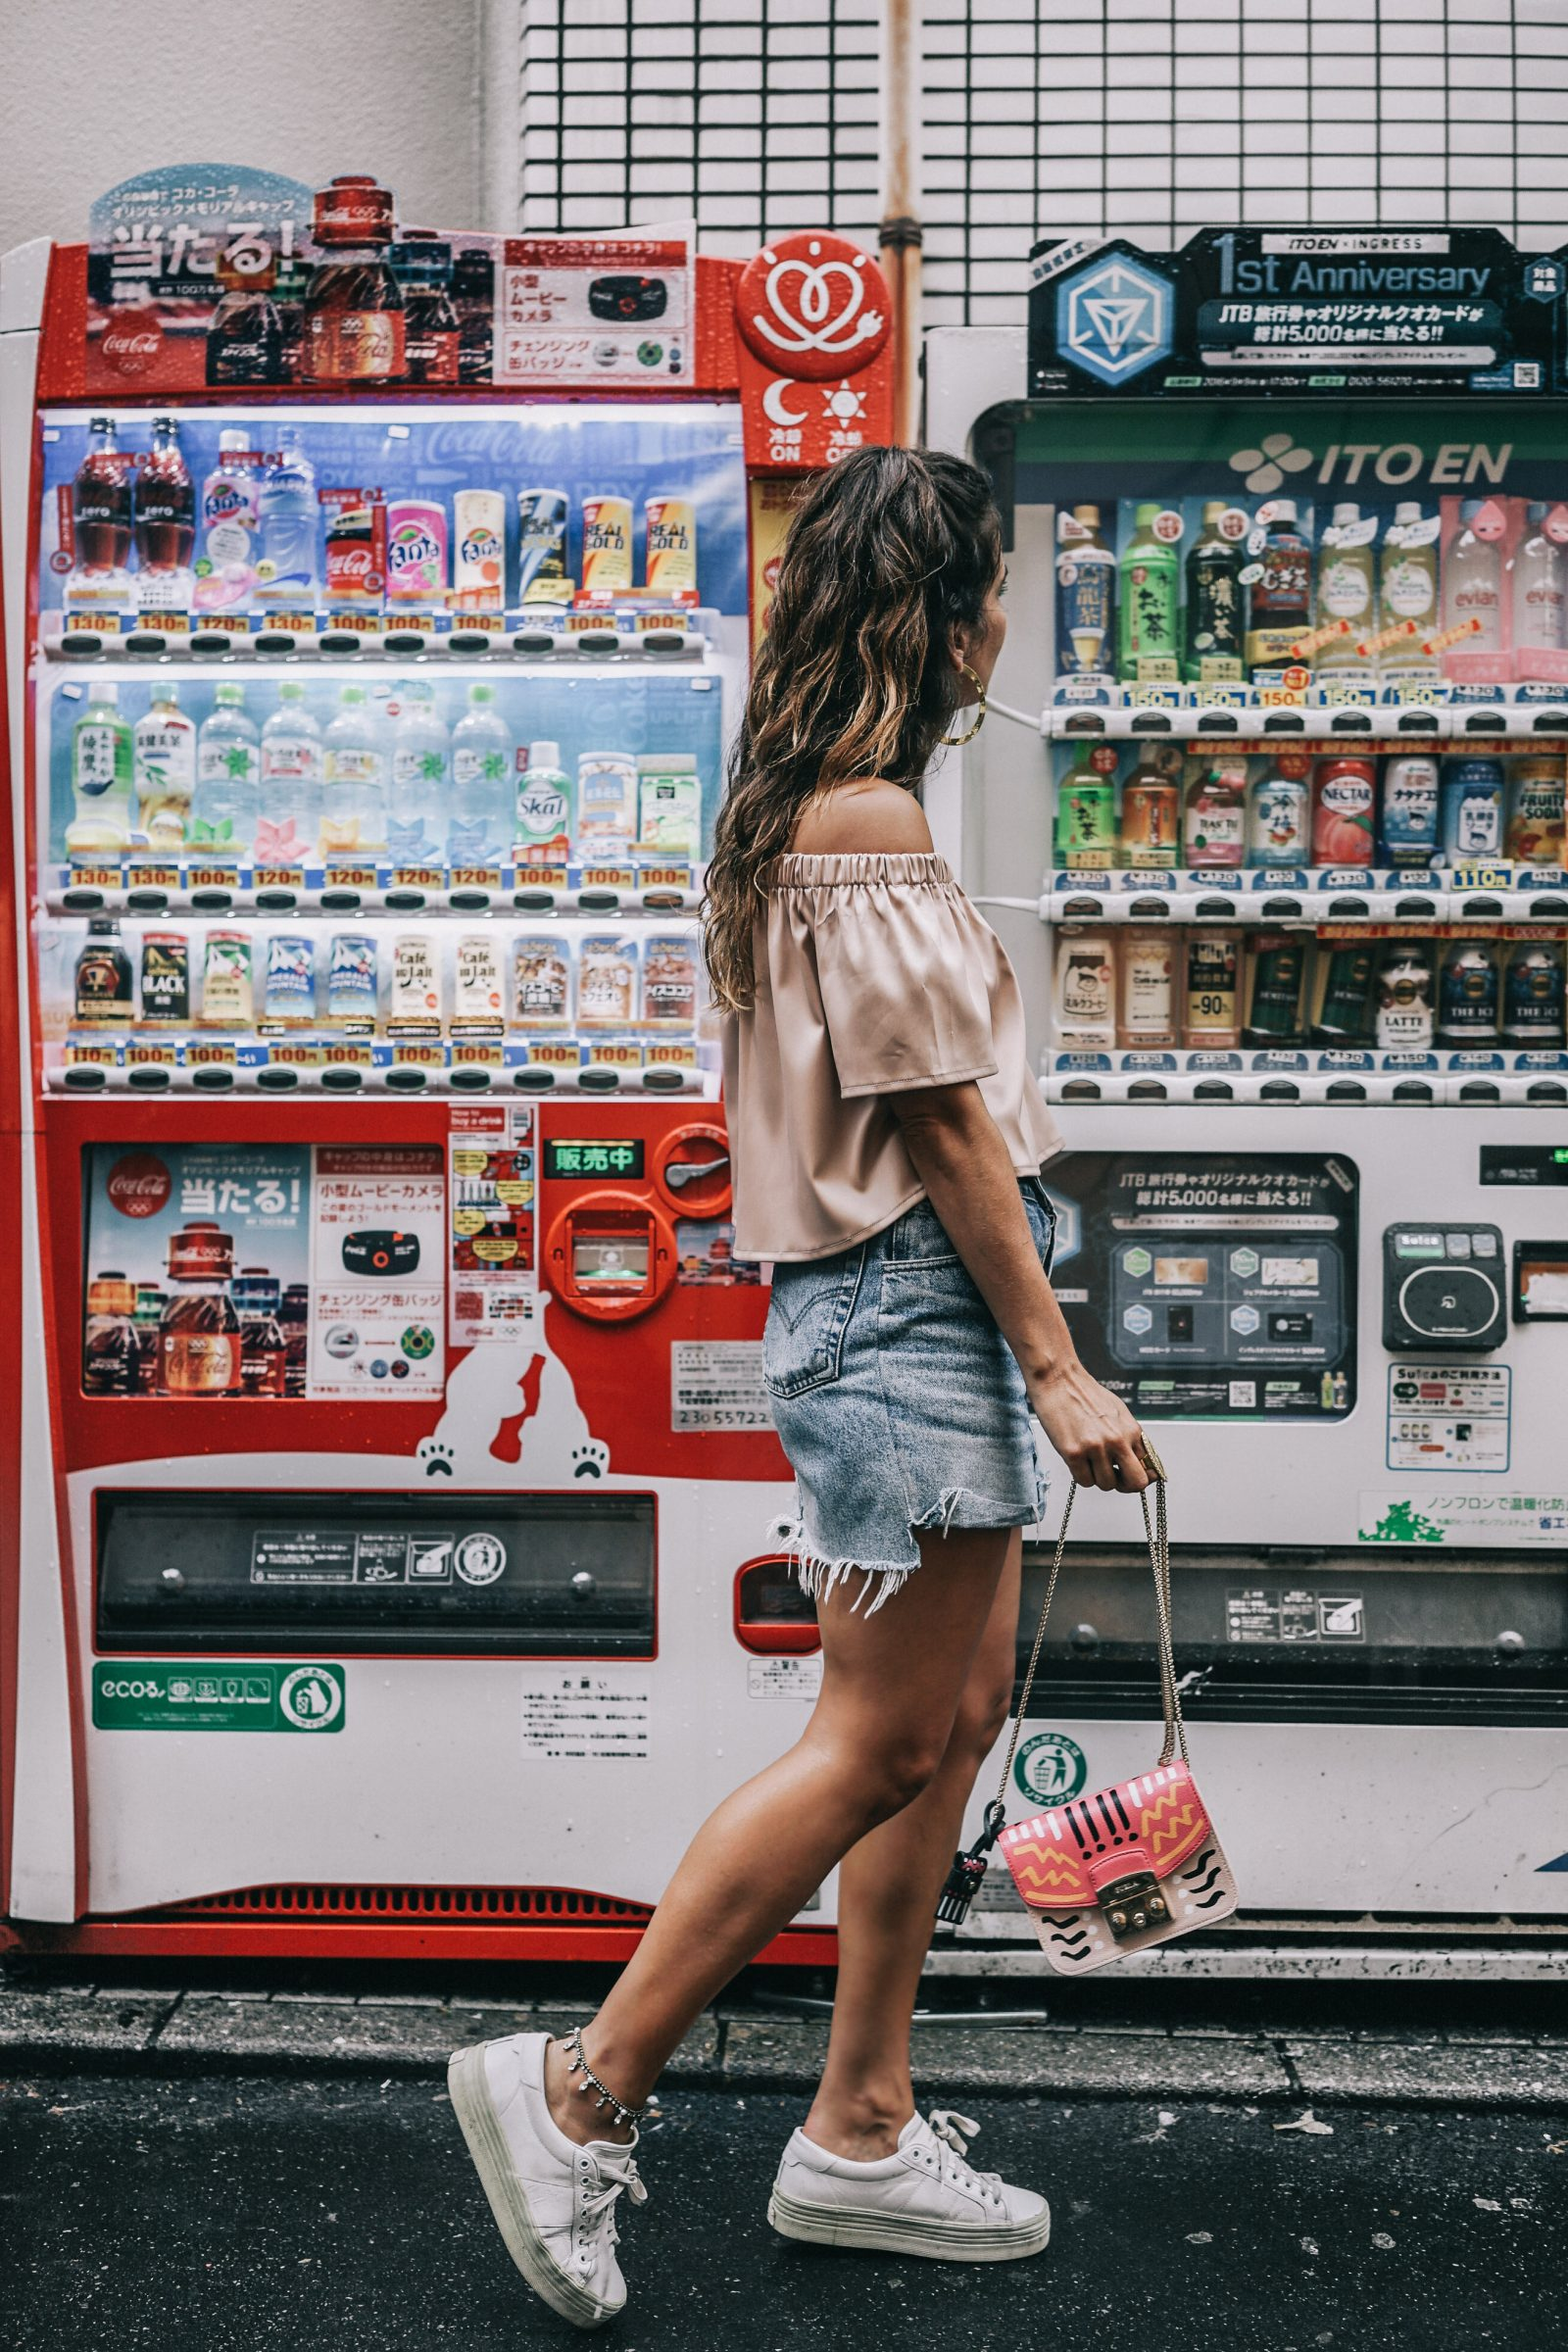 Tokyo_Travel_Guide-Fish_Market-Harajuku-Levis_Denim_Skirt-Off_The_Shoulders_Top-YSL_Sneakers-Outfit-Collage_Vintage-Street_Style-125